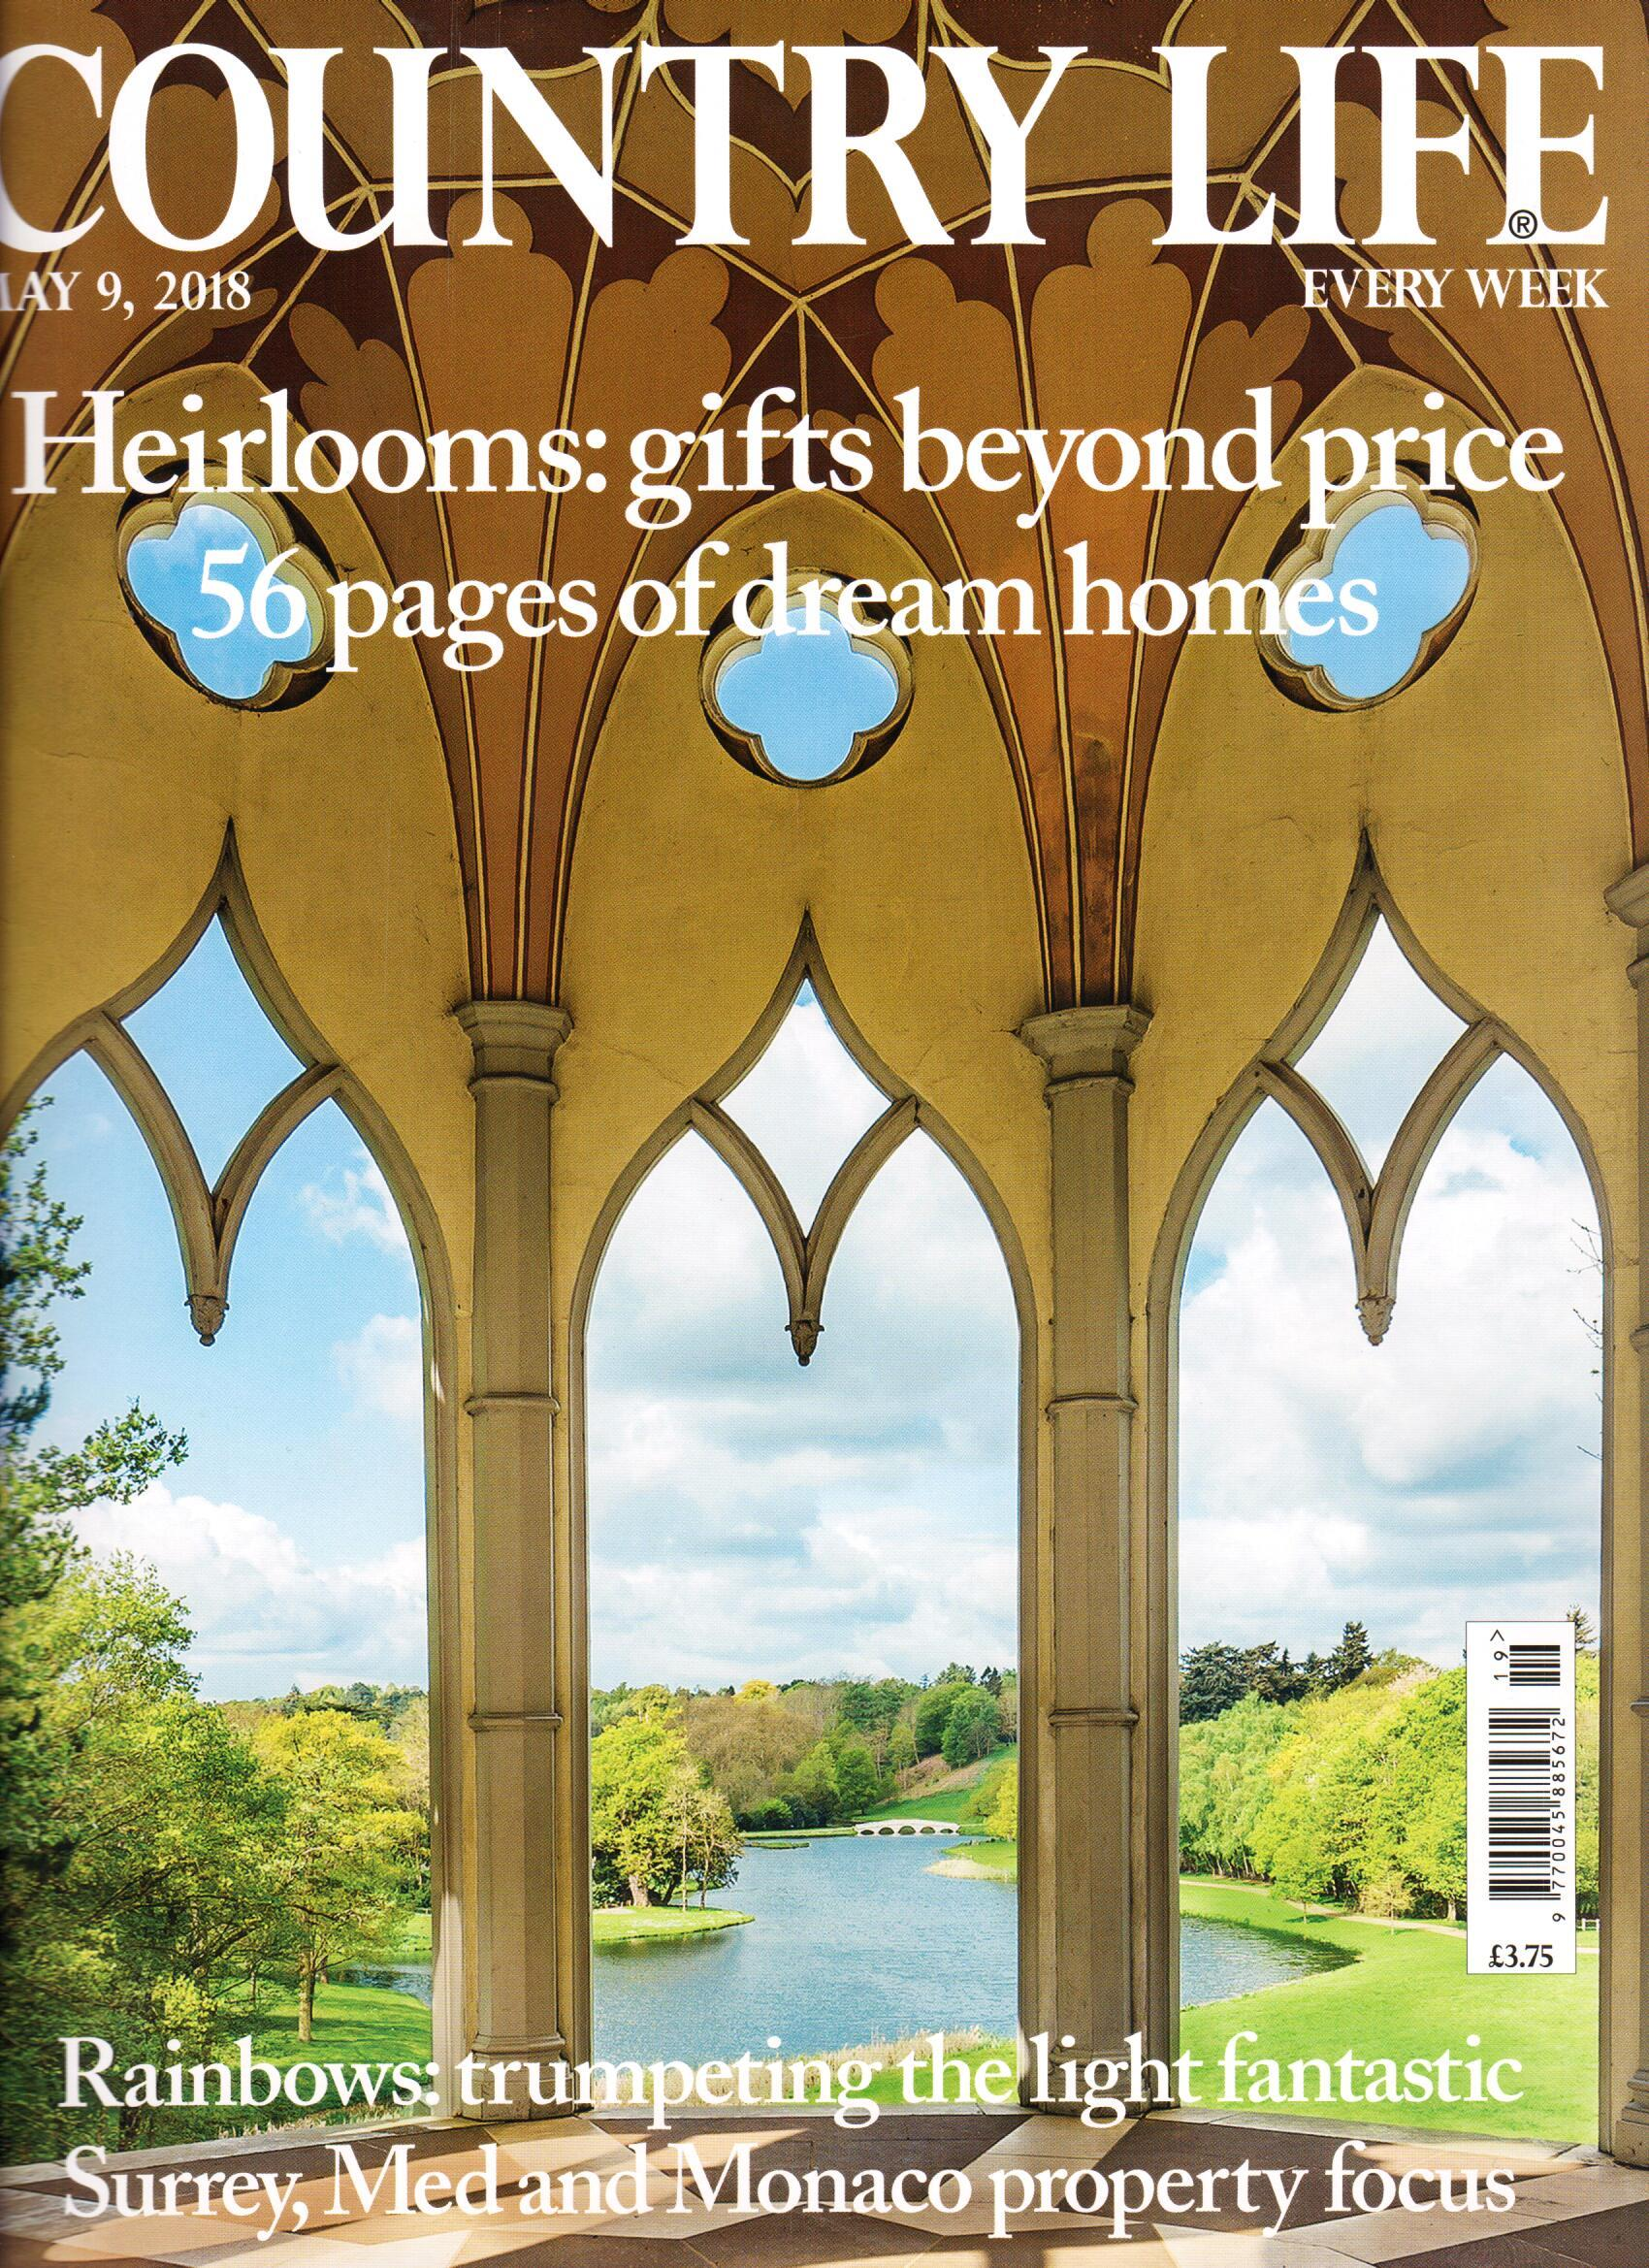 Country Life Heirlooms issue cover.jpg